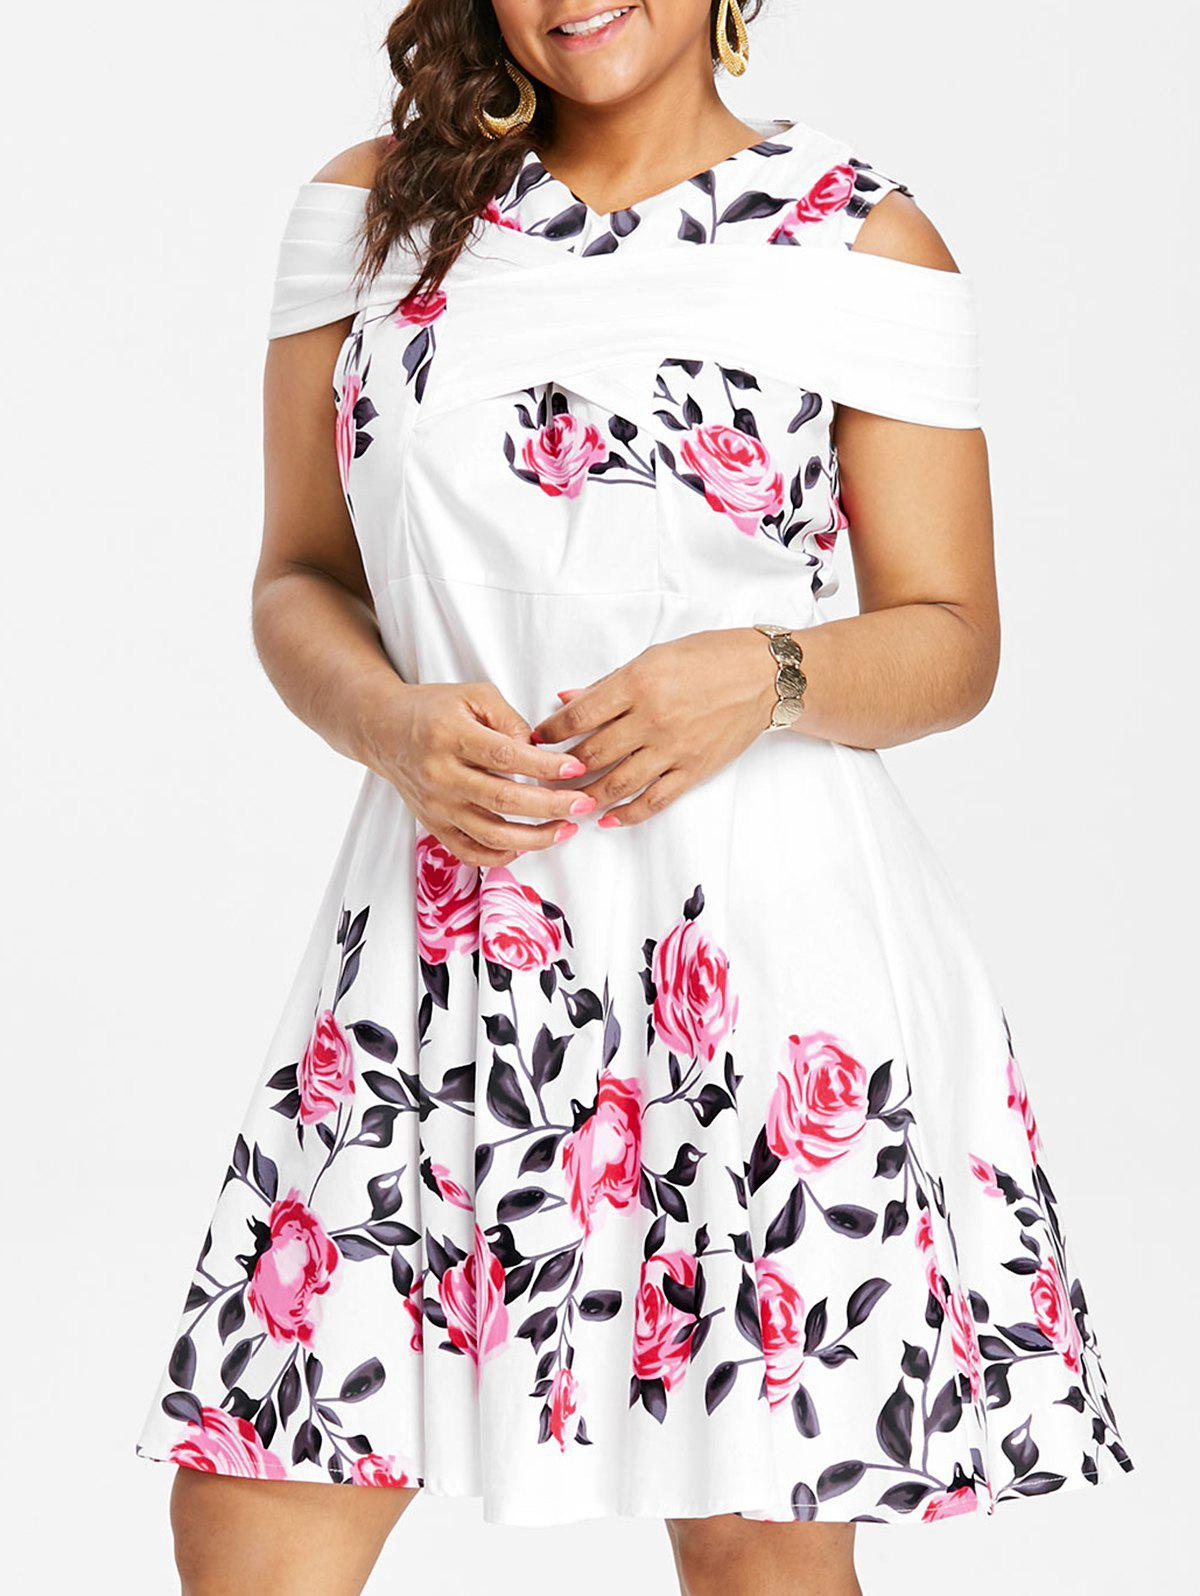 Buy Criss Cross Plus Size Floral 1950s Pin Up Dress